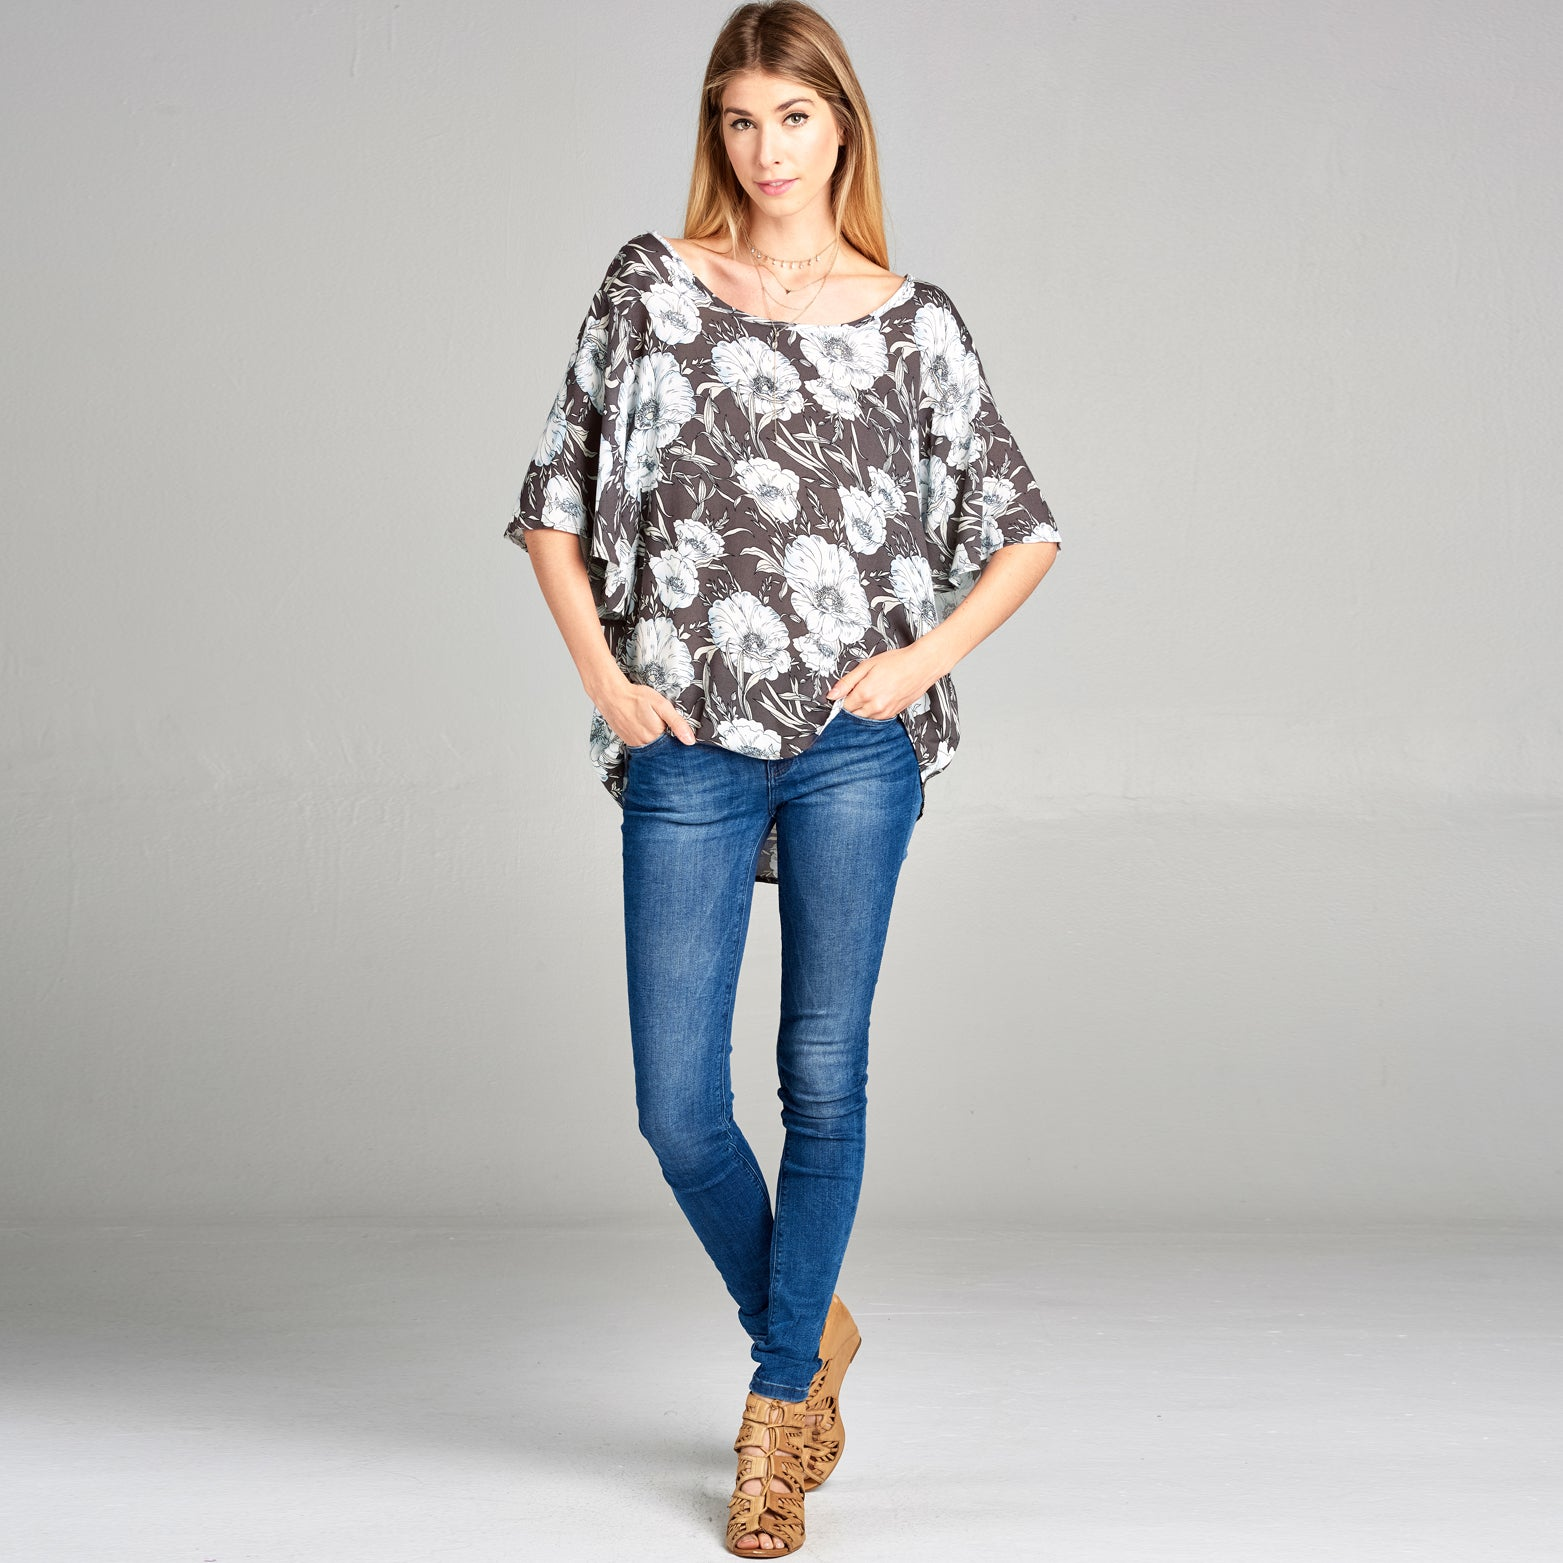 Butterfly Sleeve Floral Top